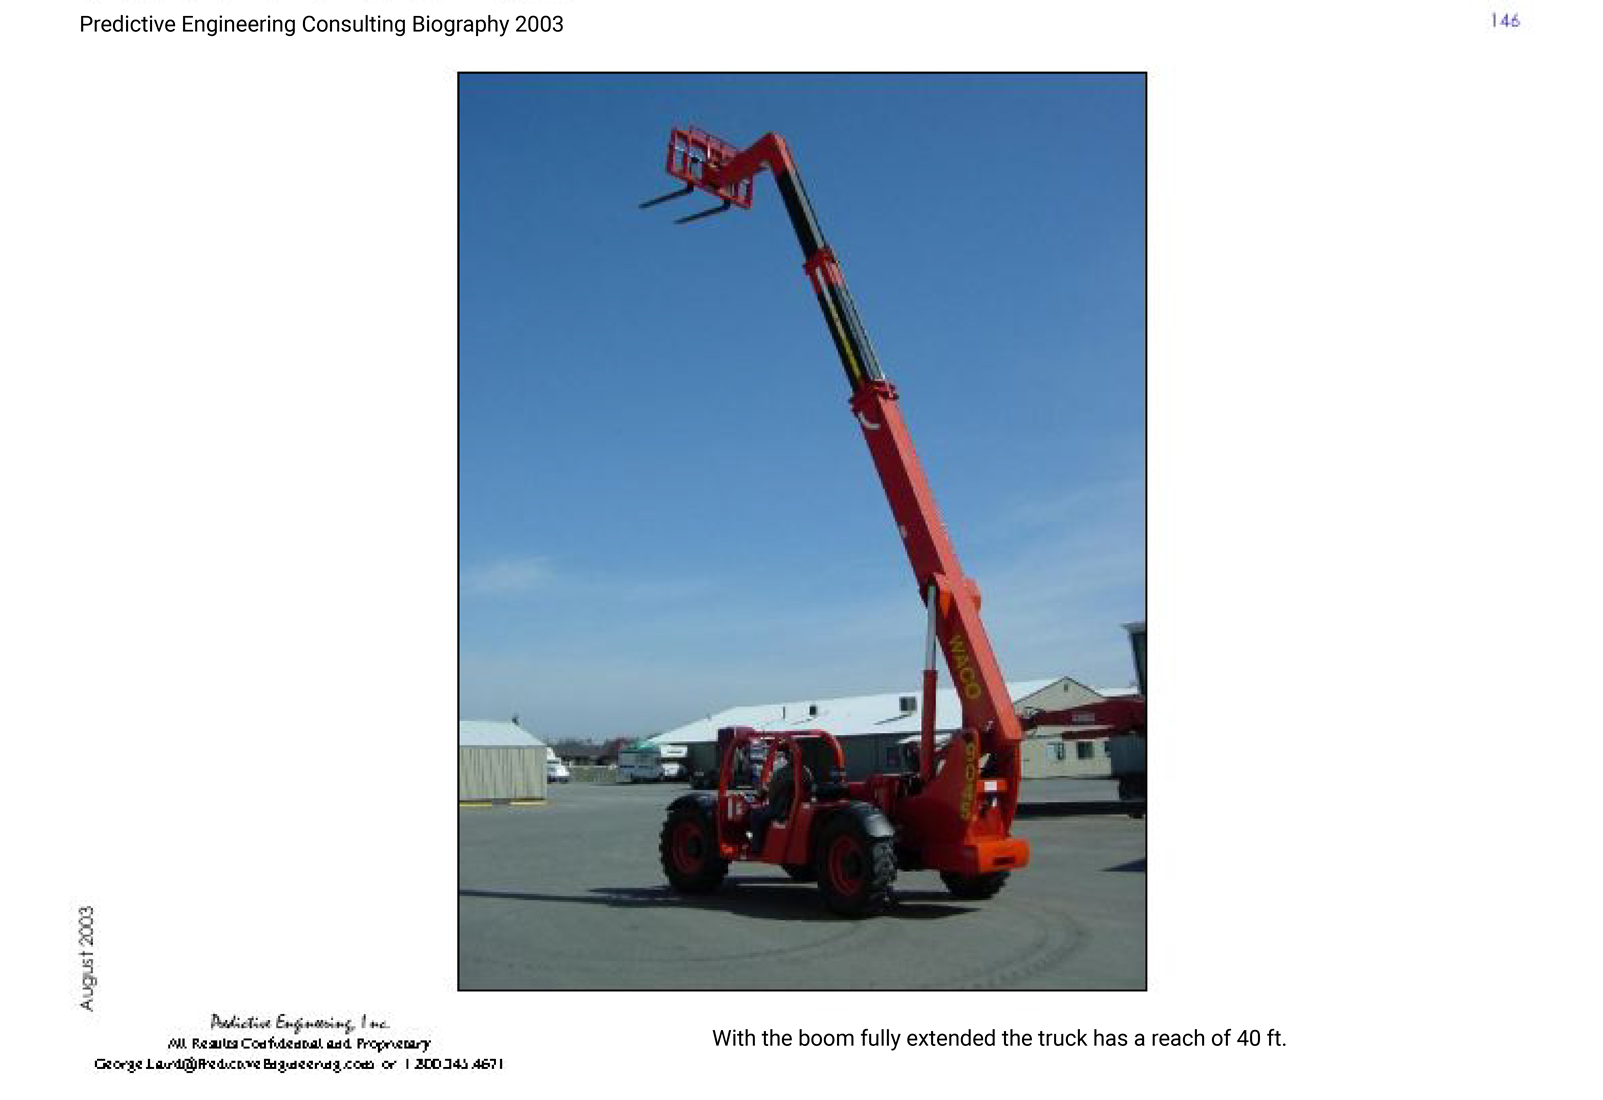 Lift truck analyzed using FEA with the boom fully extended